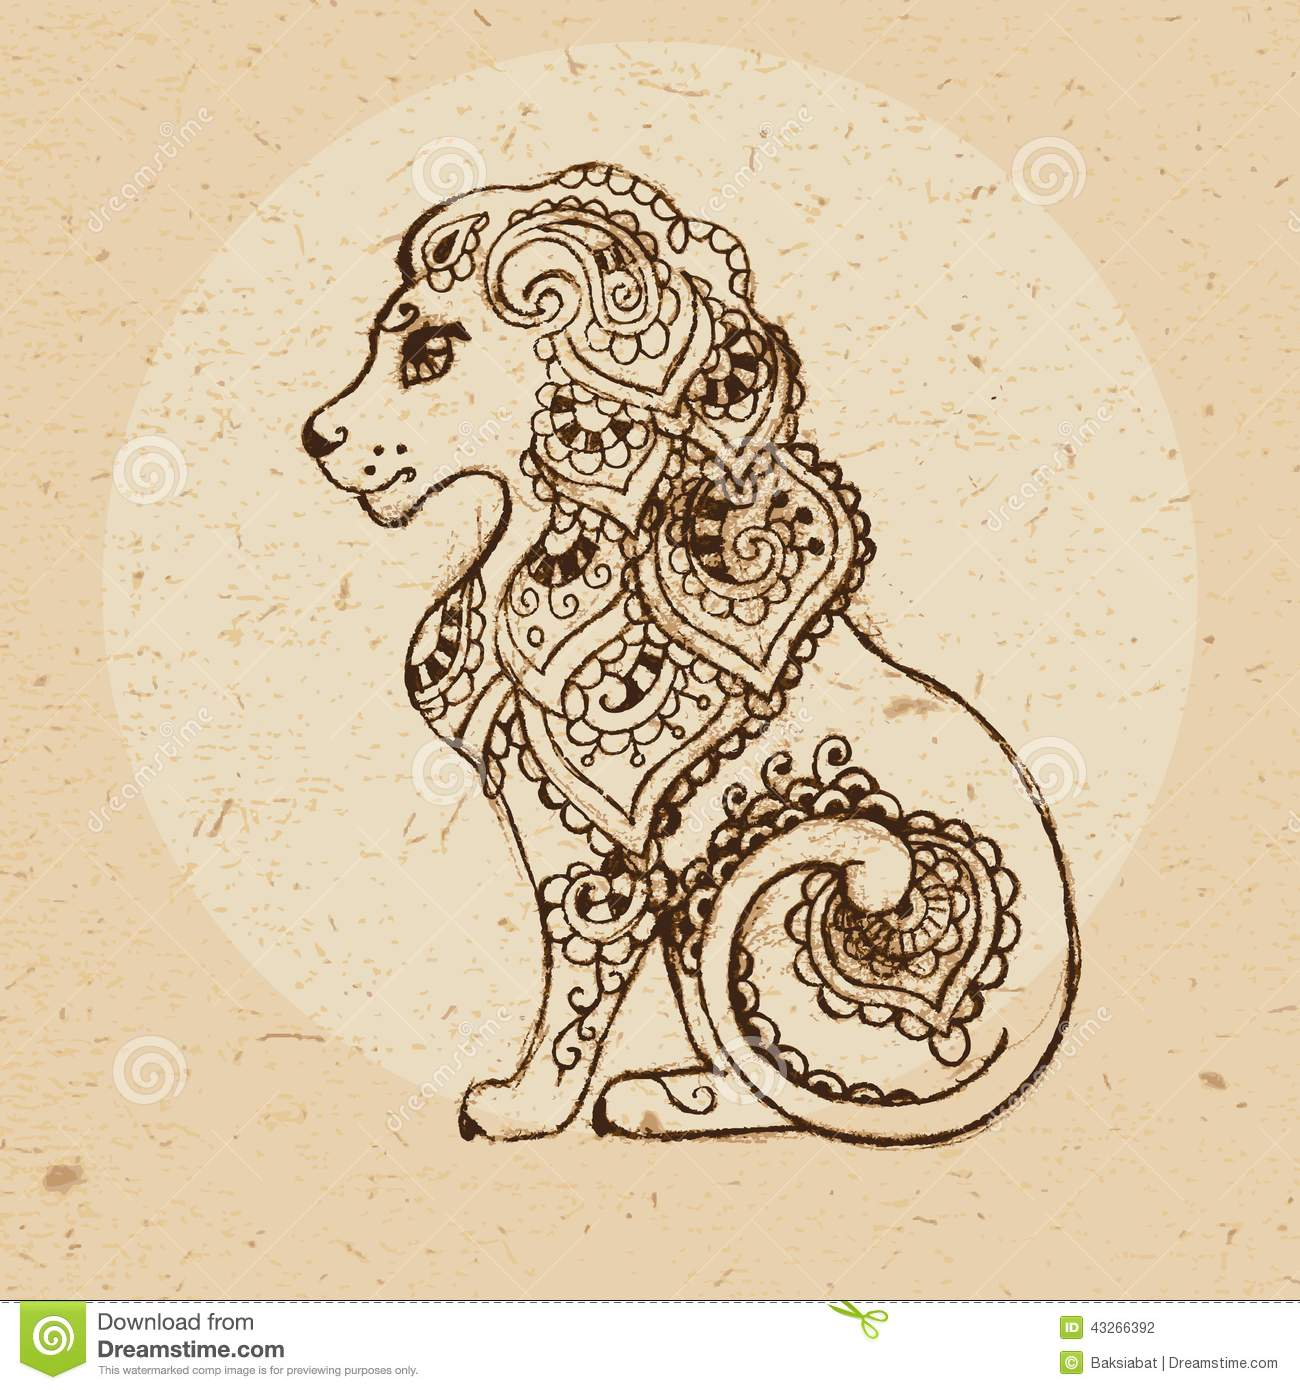 https://thumbs.dreamstime.com/z/zodiac-sign-leo-hand-drawn-lion-elements-ornament-ethnic-style-vector-illustration-43266392.jpg Leo Animal Sign